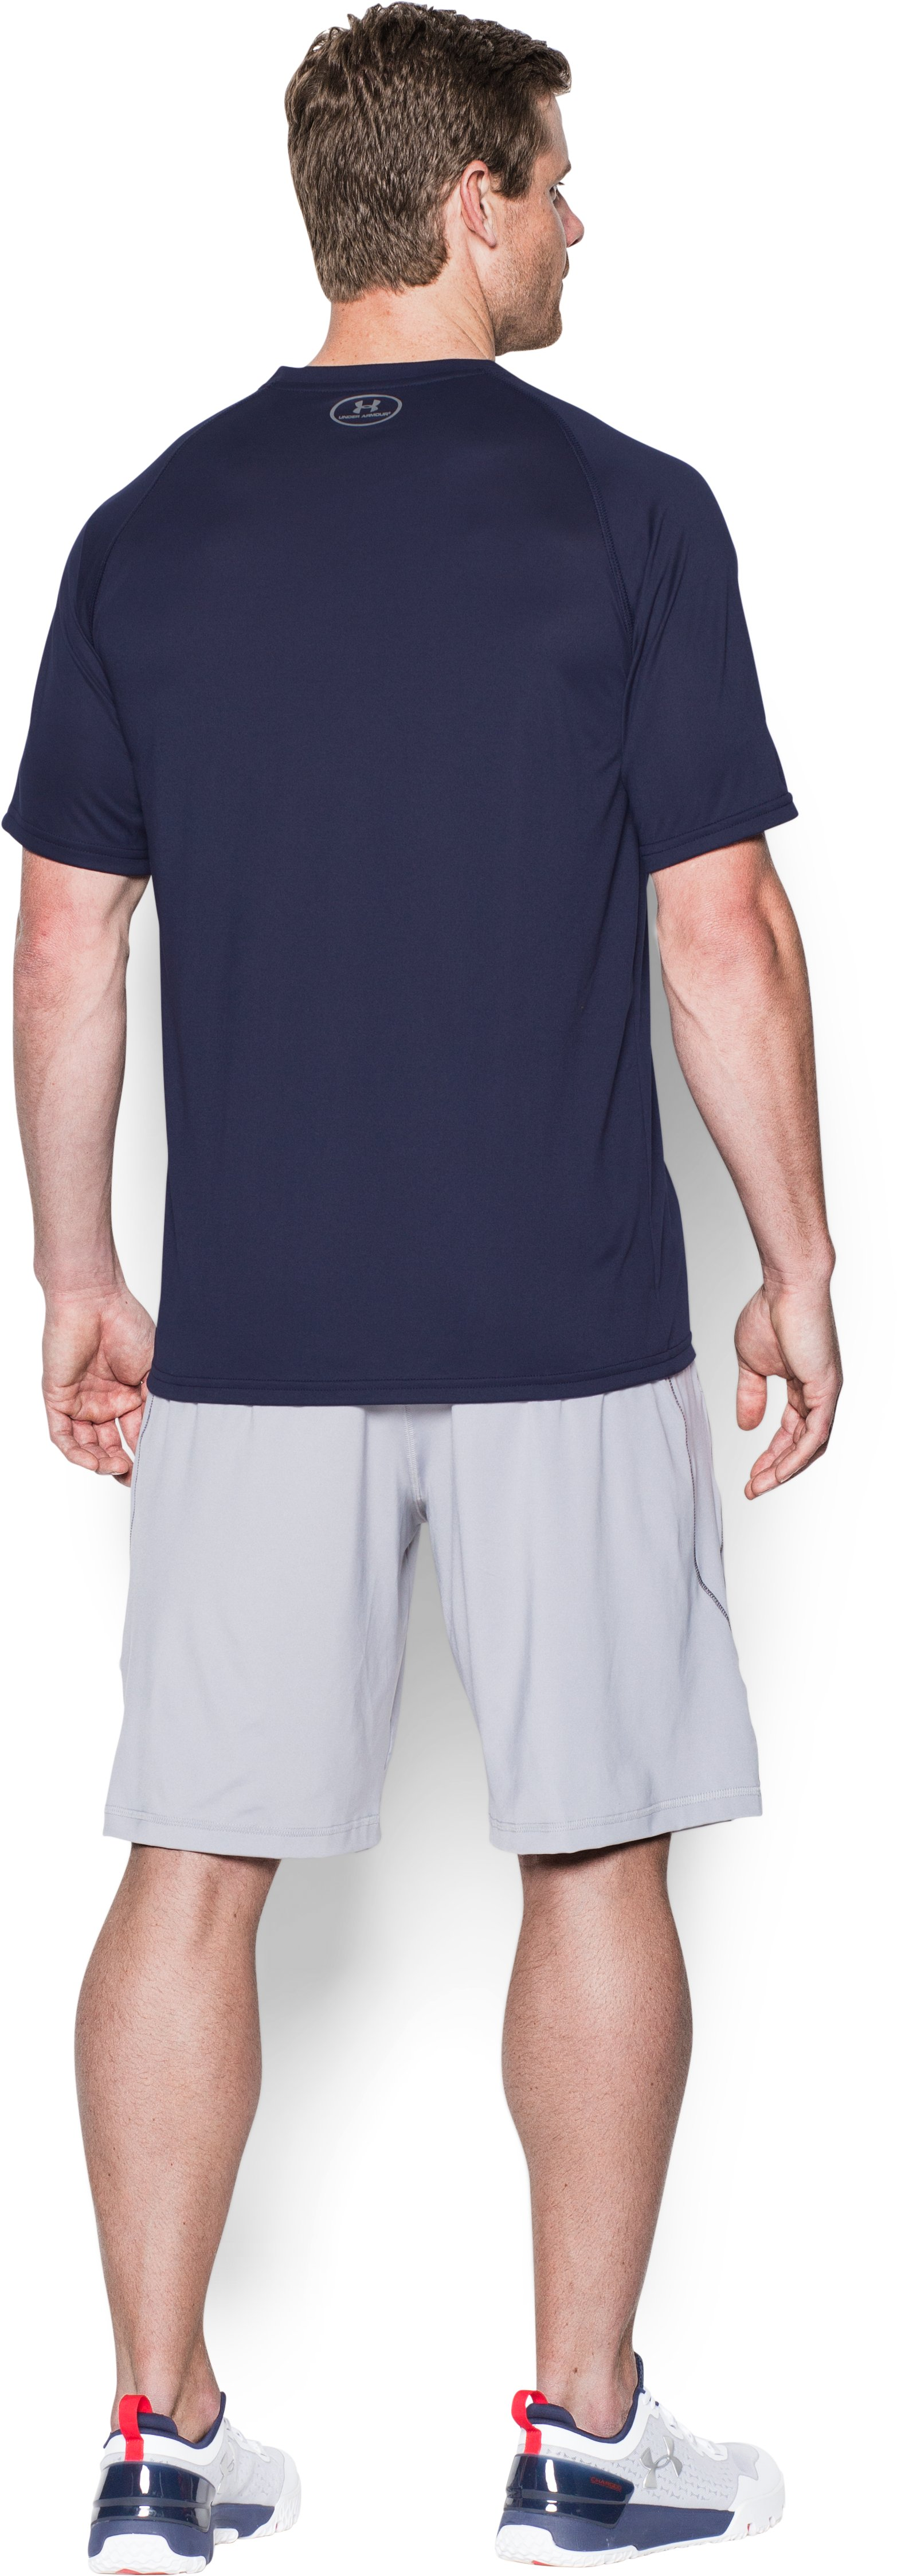 Men's San Diego Padres Team Tech™ T-Shirt, Midnight Navy, Back